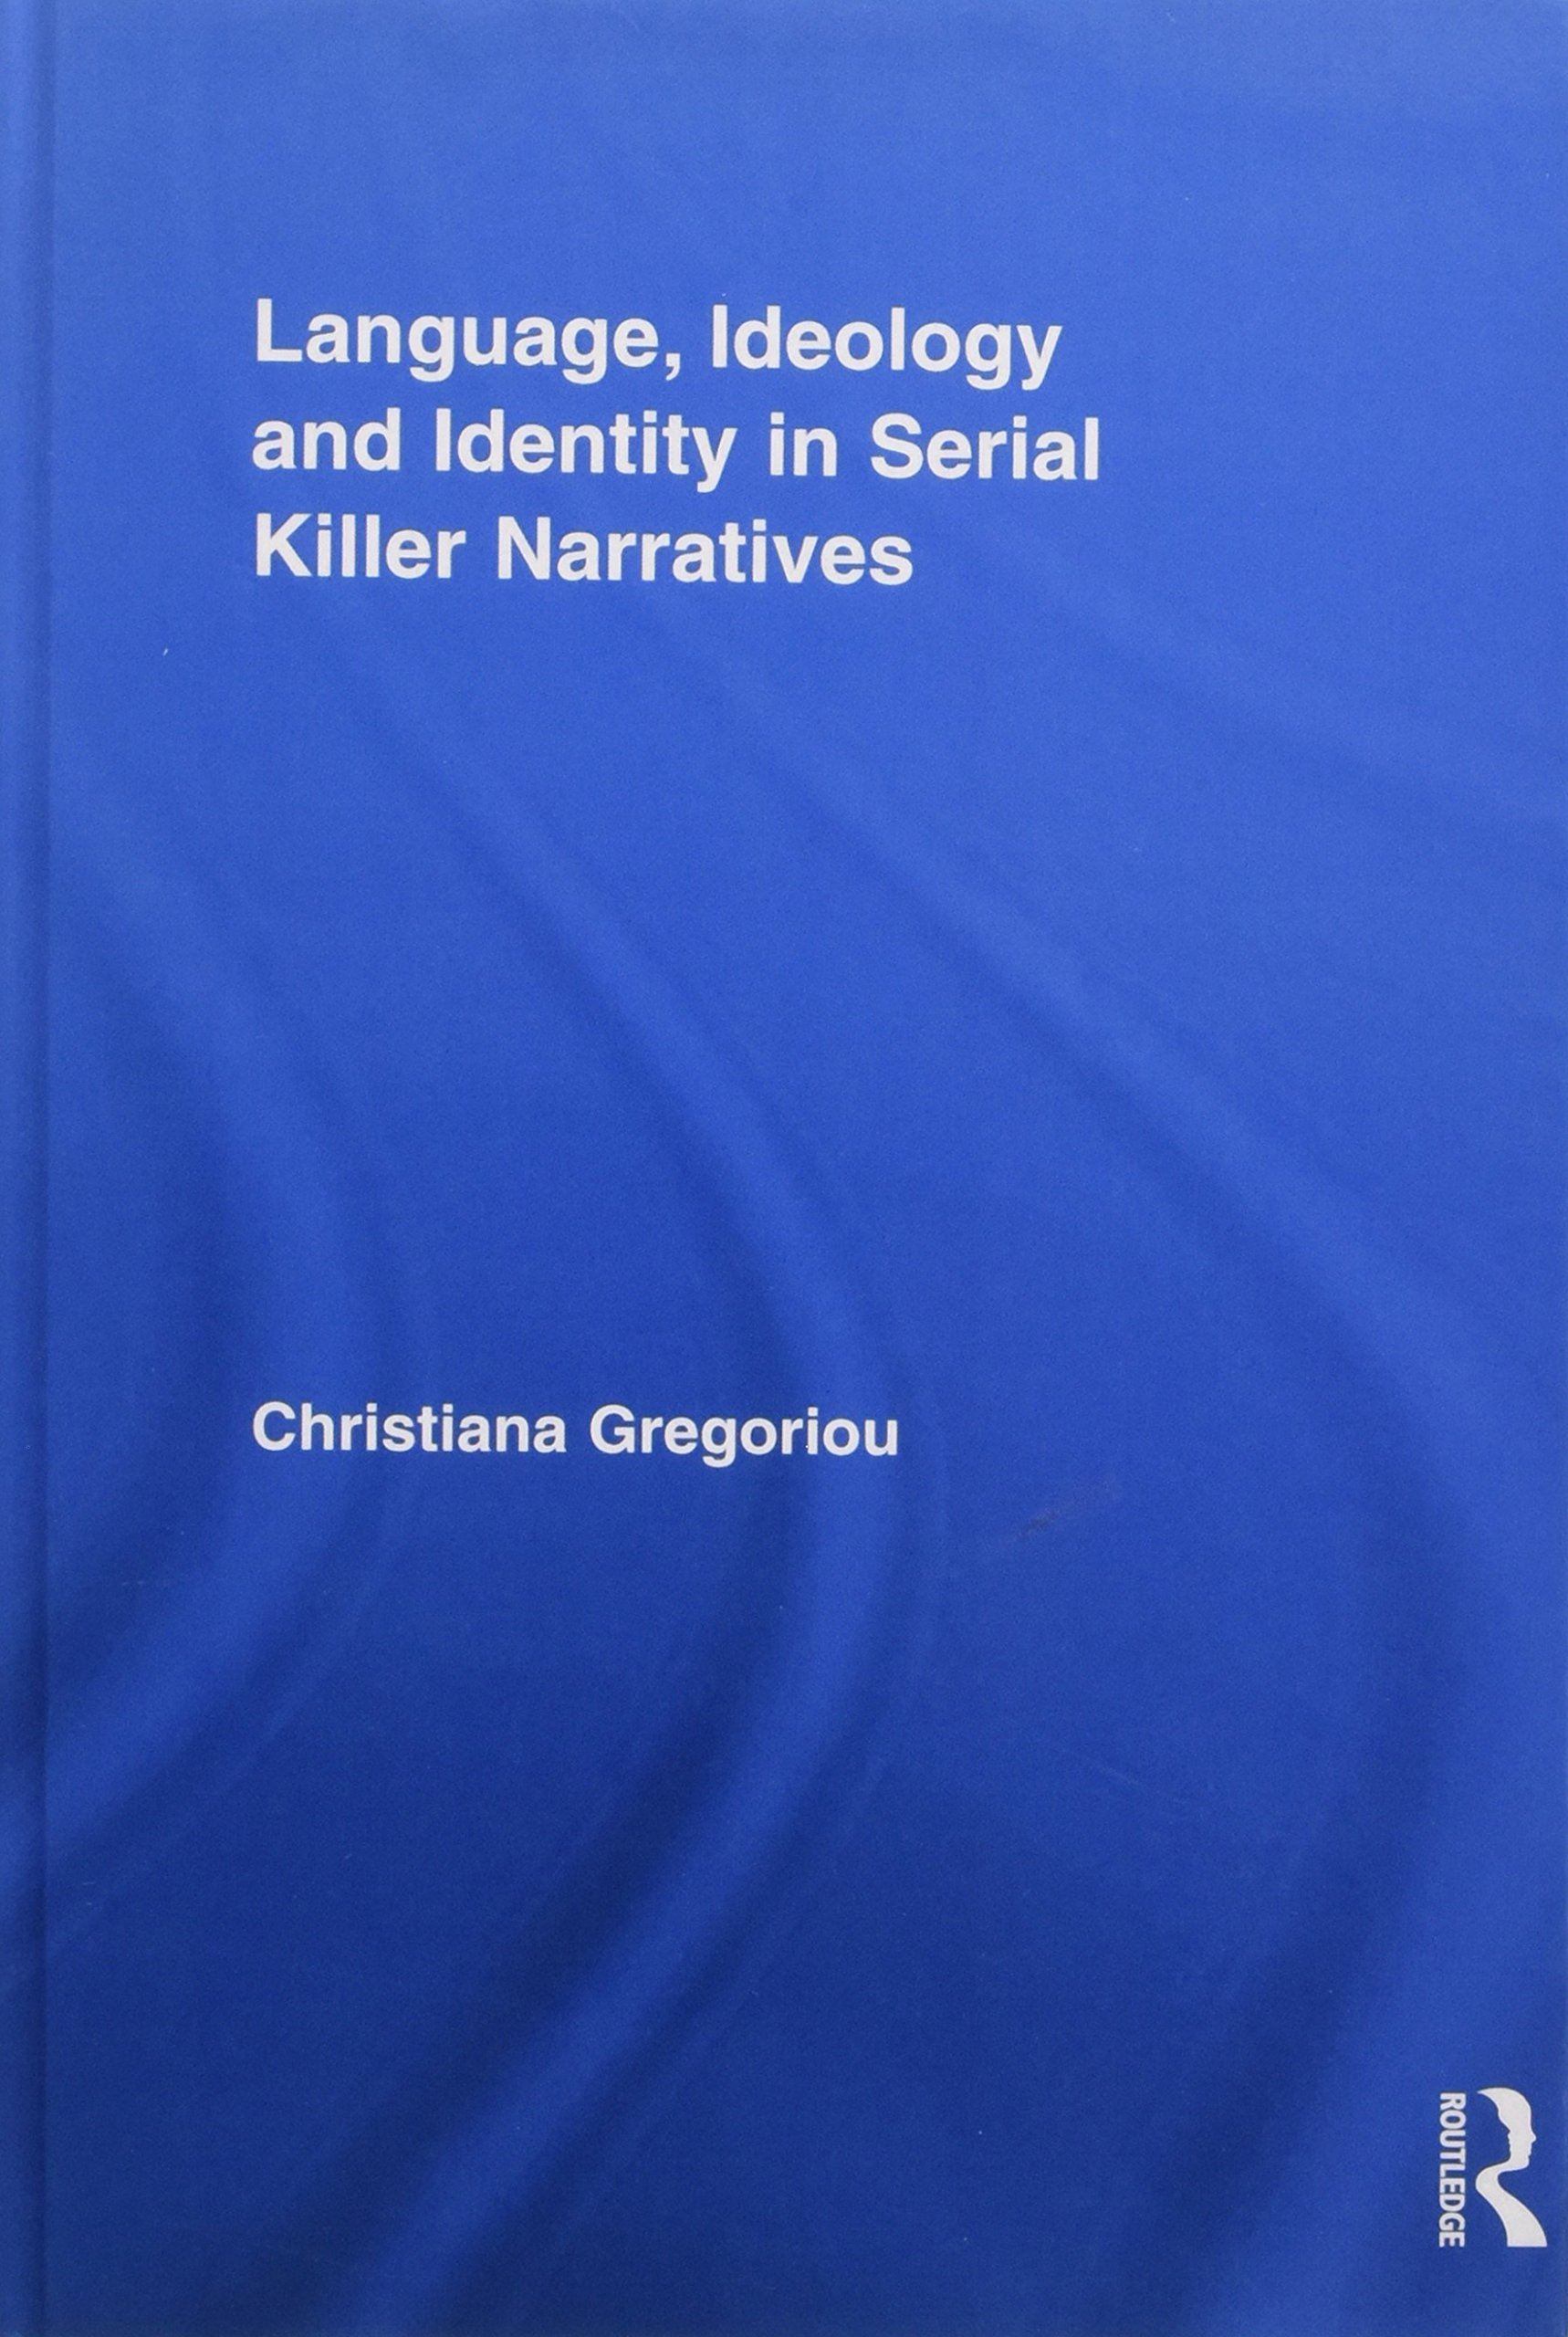 Language, Ideology and Identity in Serial Killer Narratives (Routledge Studies in Rhetoric and Stylistics) by Routledge